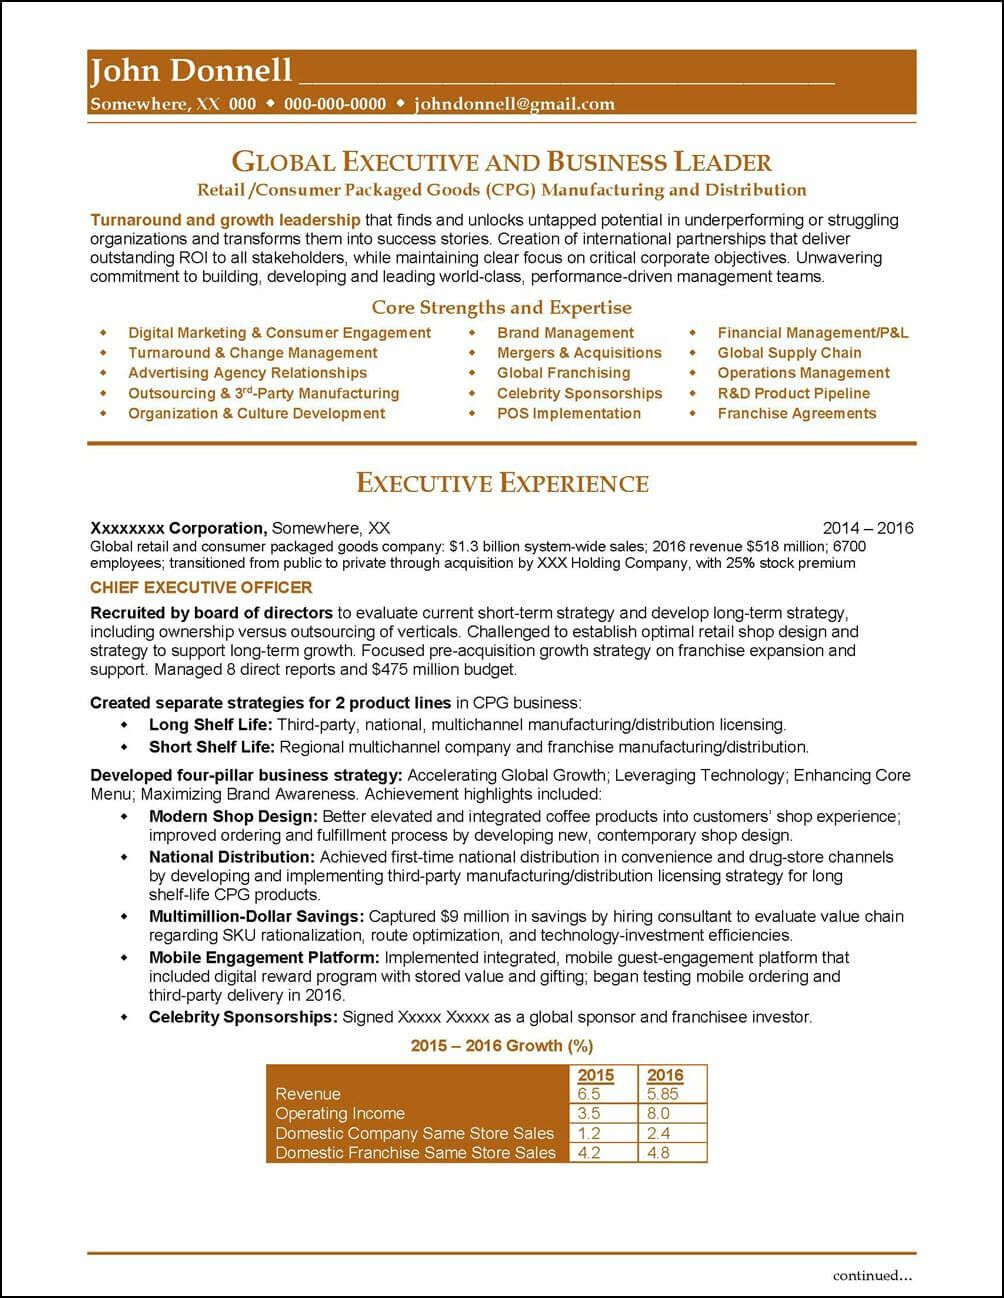 Global Executive Resume Cpg Manufacturing Distribution